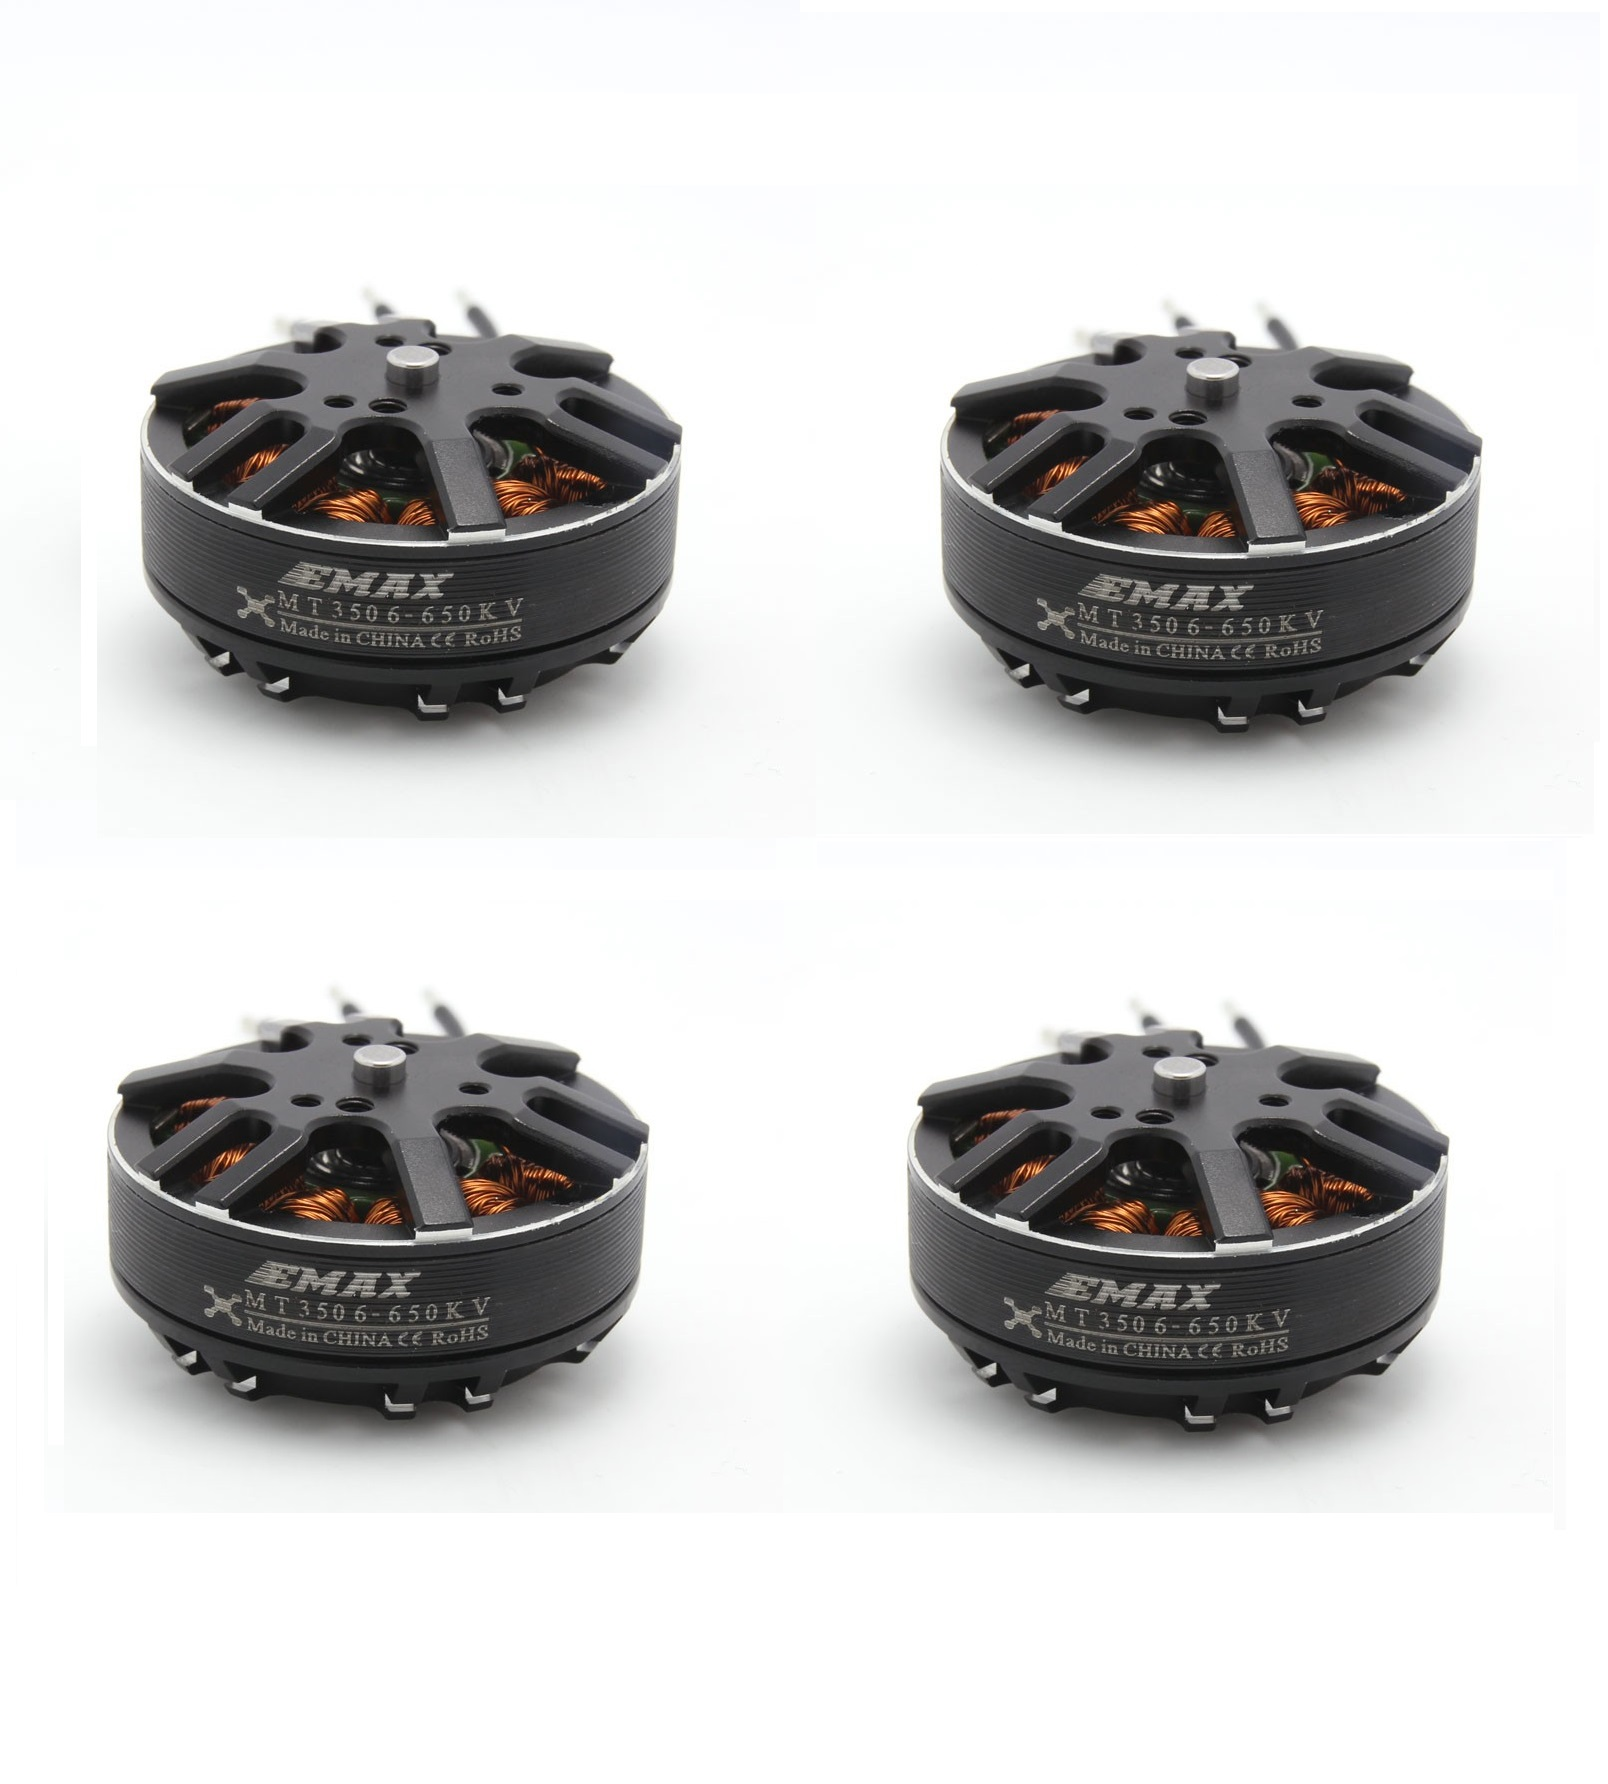 4pcs EMAX Brushless Motor MT3506 650KV KV650 Plus Thread Motor for RC FPV Multicopter Quadcopter Part lightstar подвесная люстра lightstar meta duovo 807066